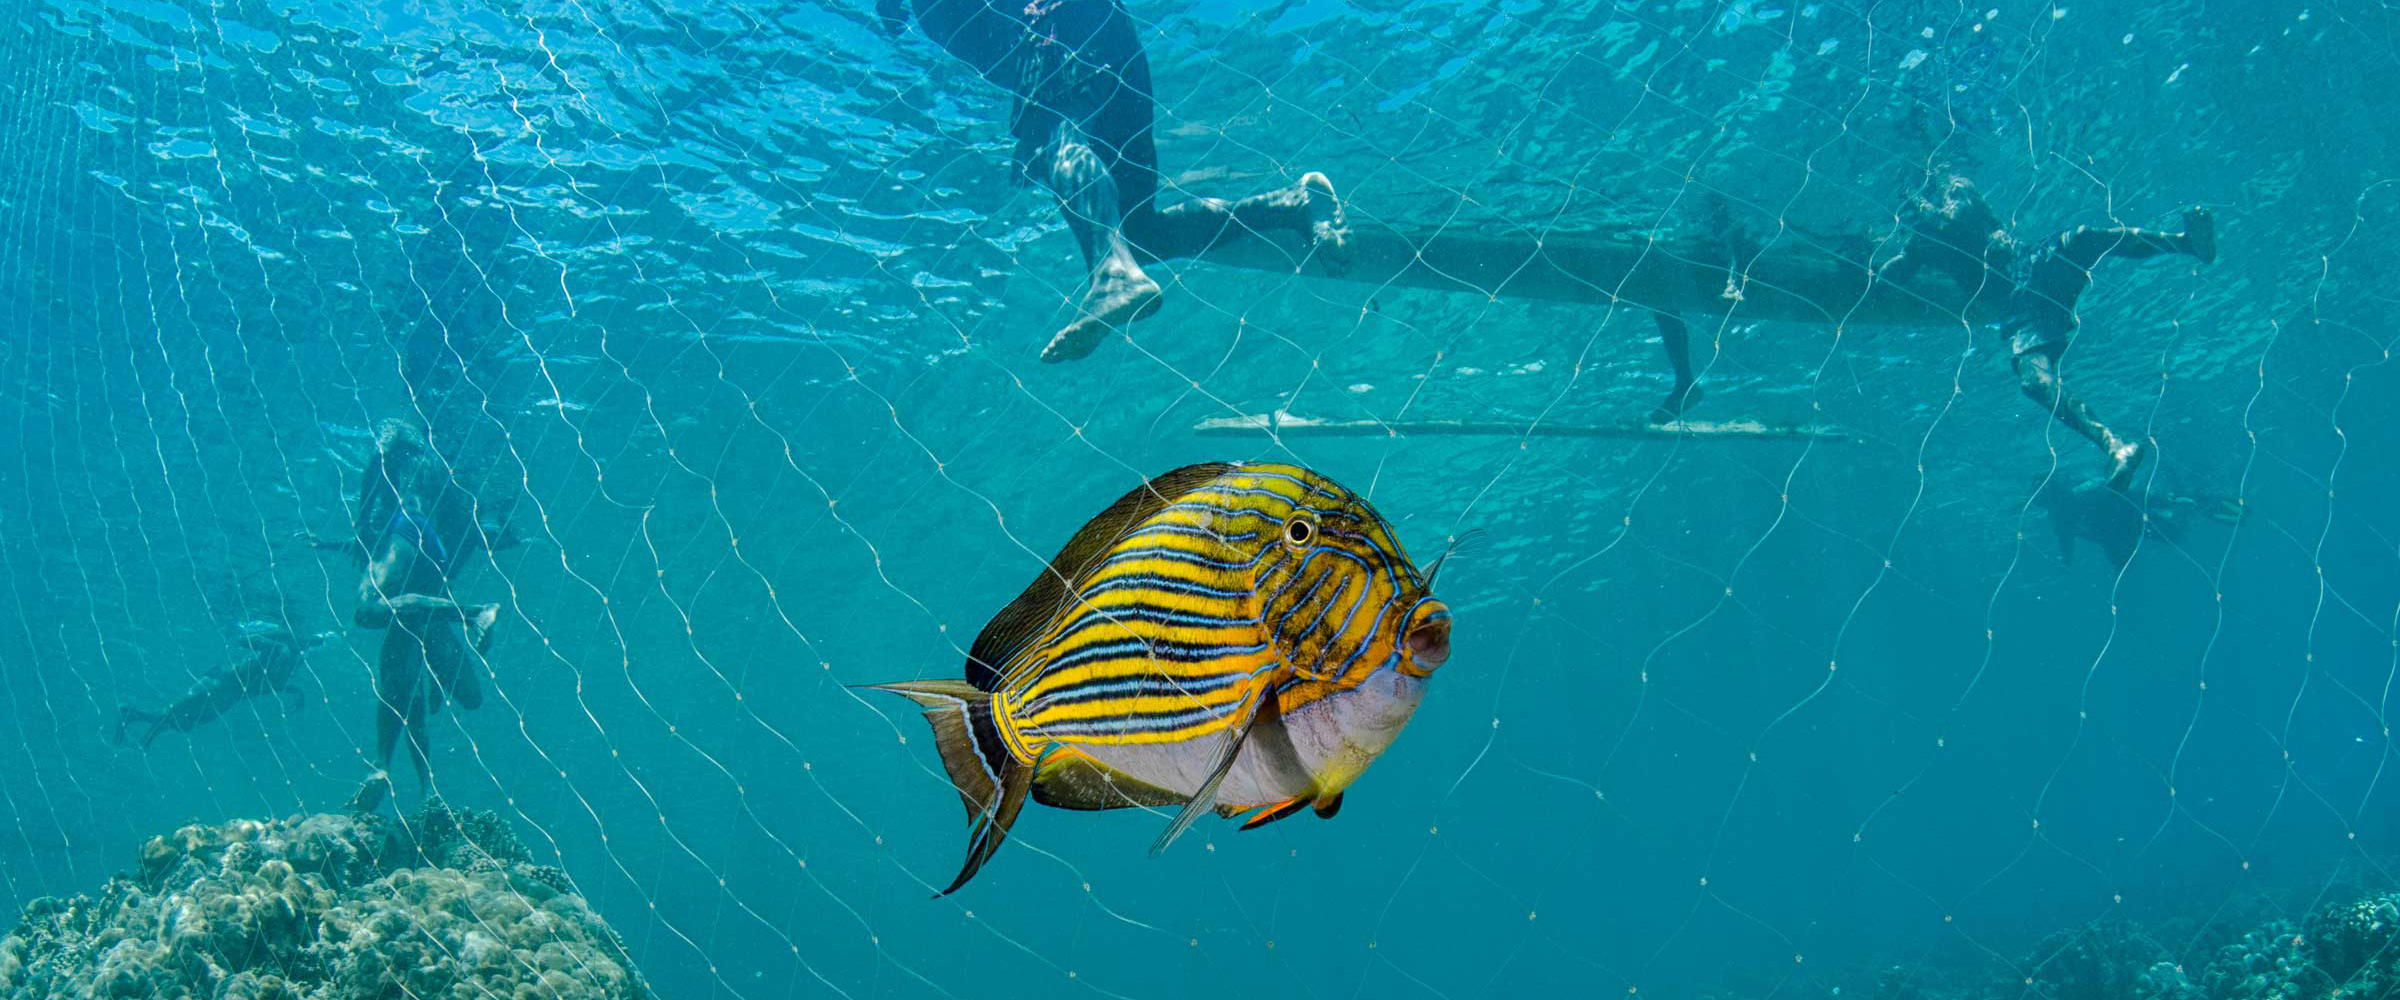 A fish is shown underwater that has been caught in a local Papuan net. Photo by conservation photographer Pete Oxford.